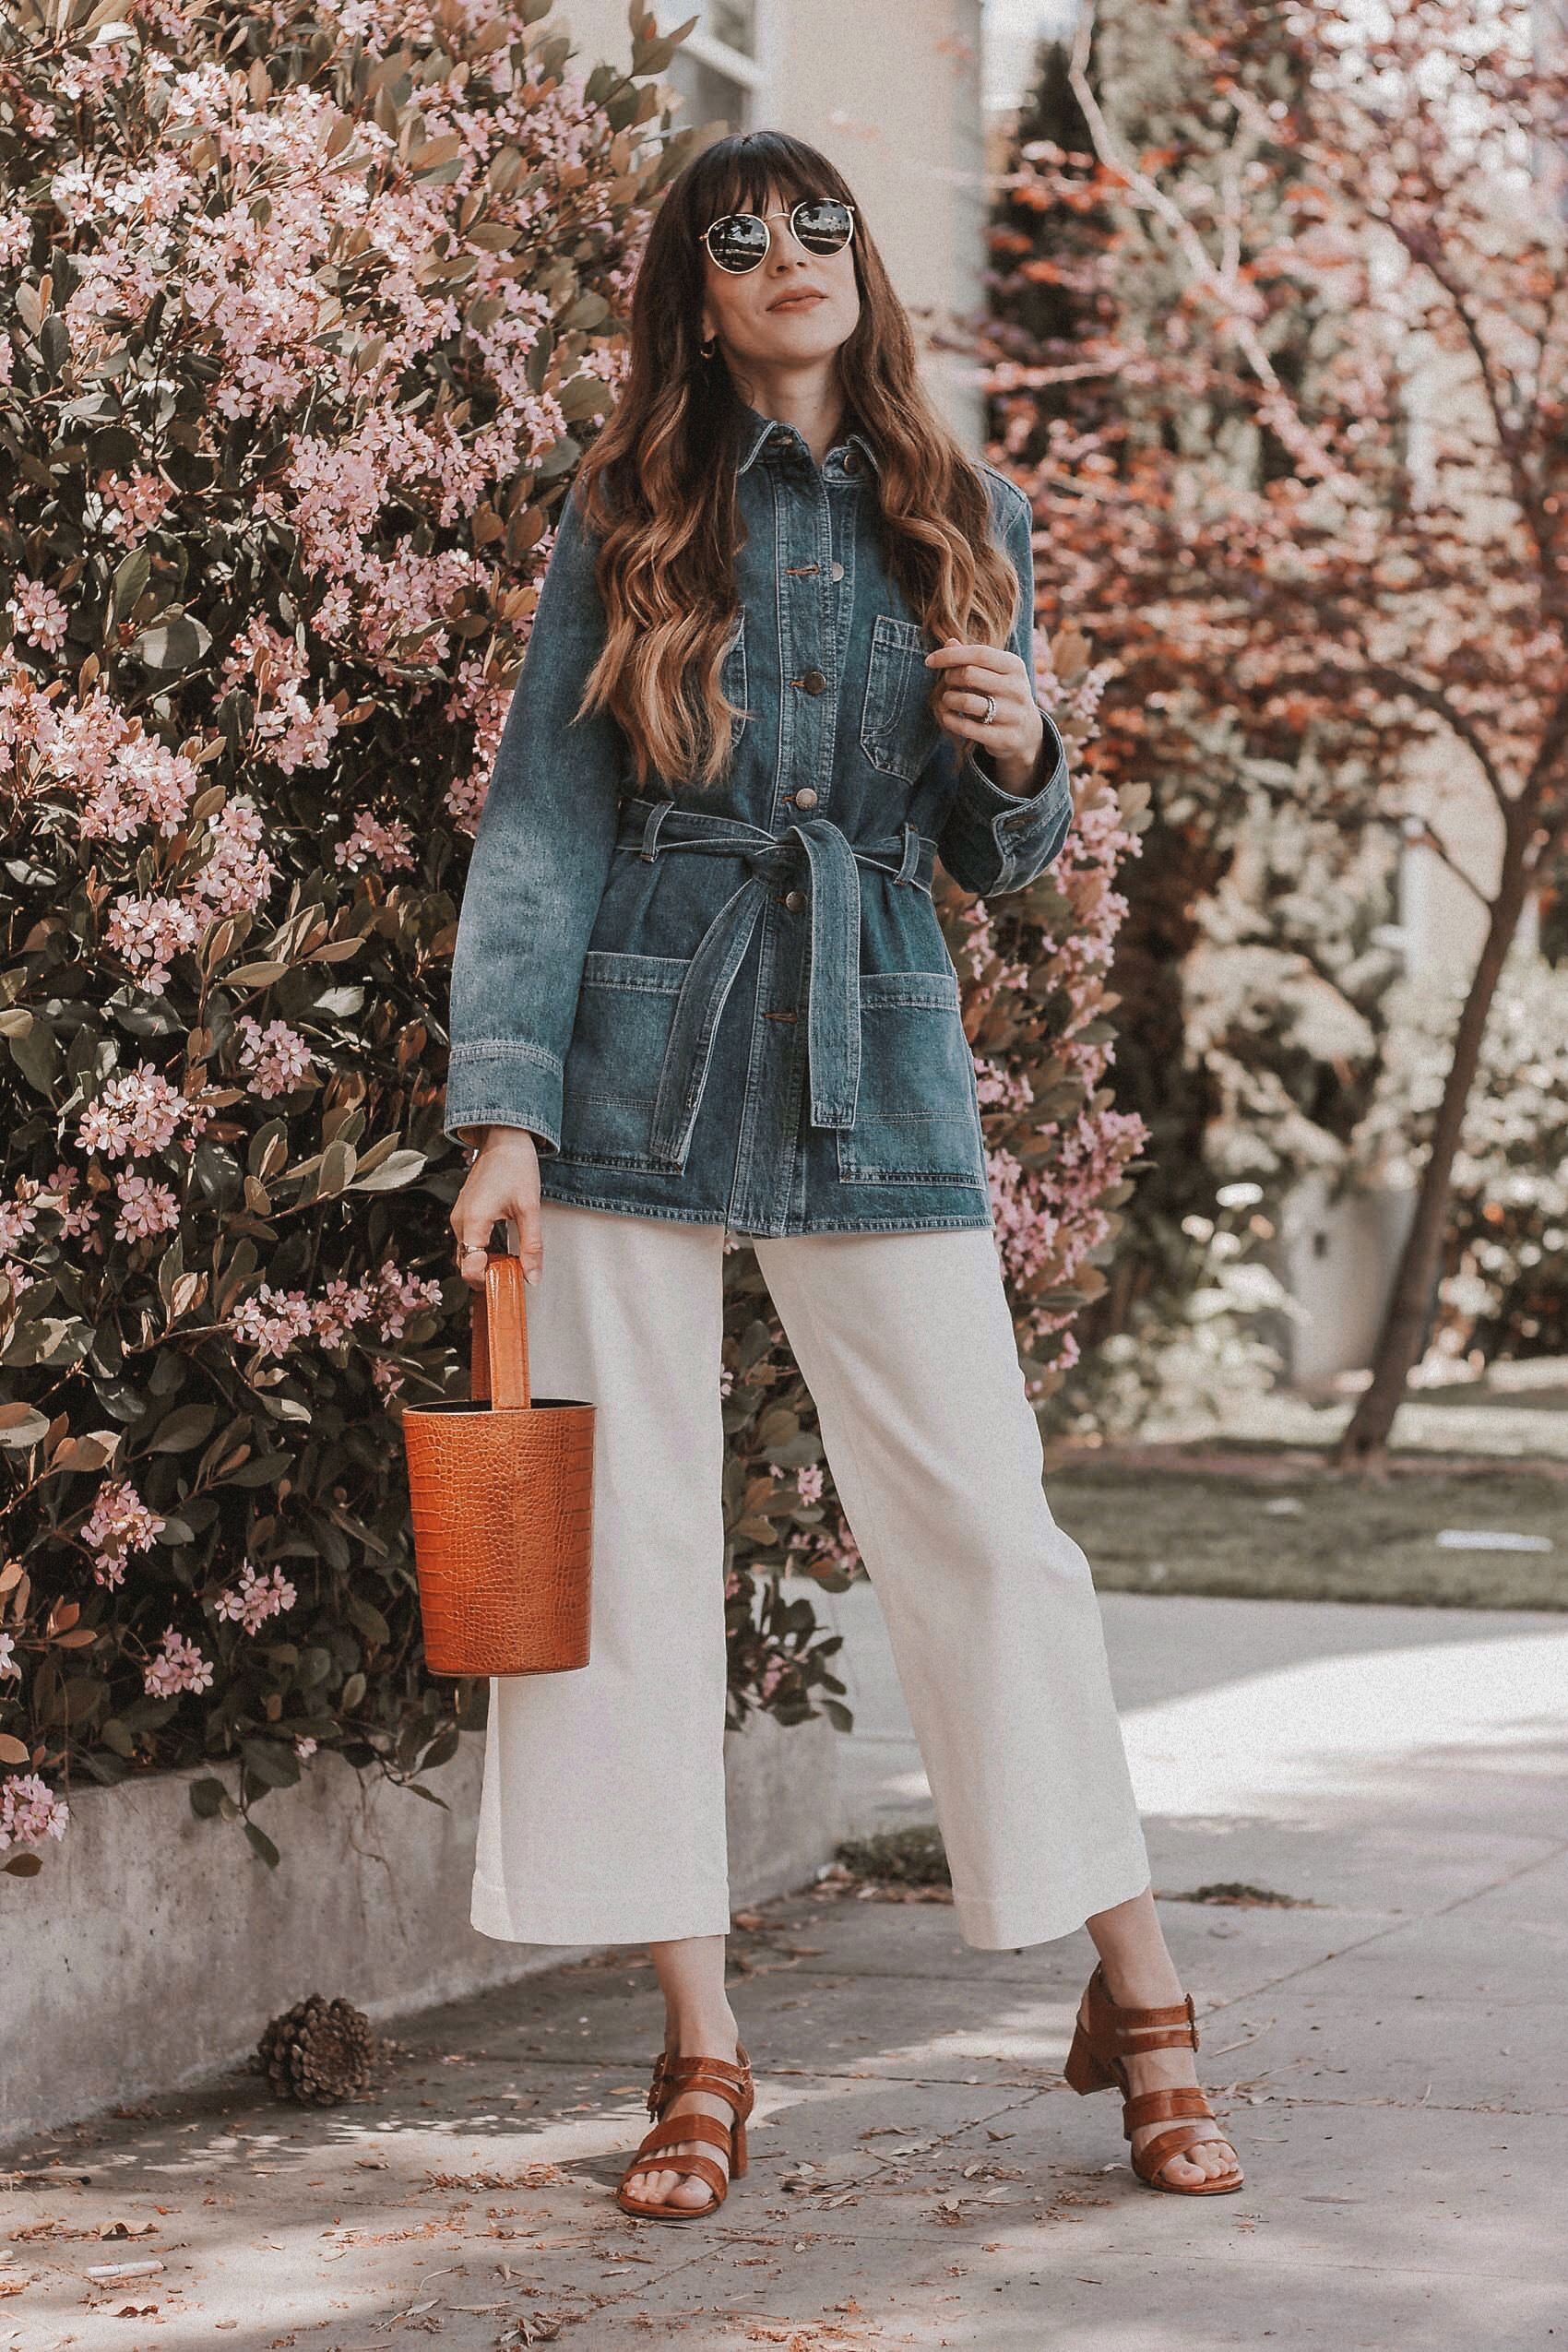 & Other Stories Denim Jacket, Everlane Wide Leg Crop Pants, Marais USA